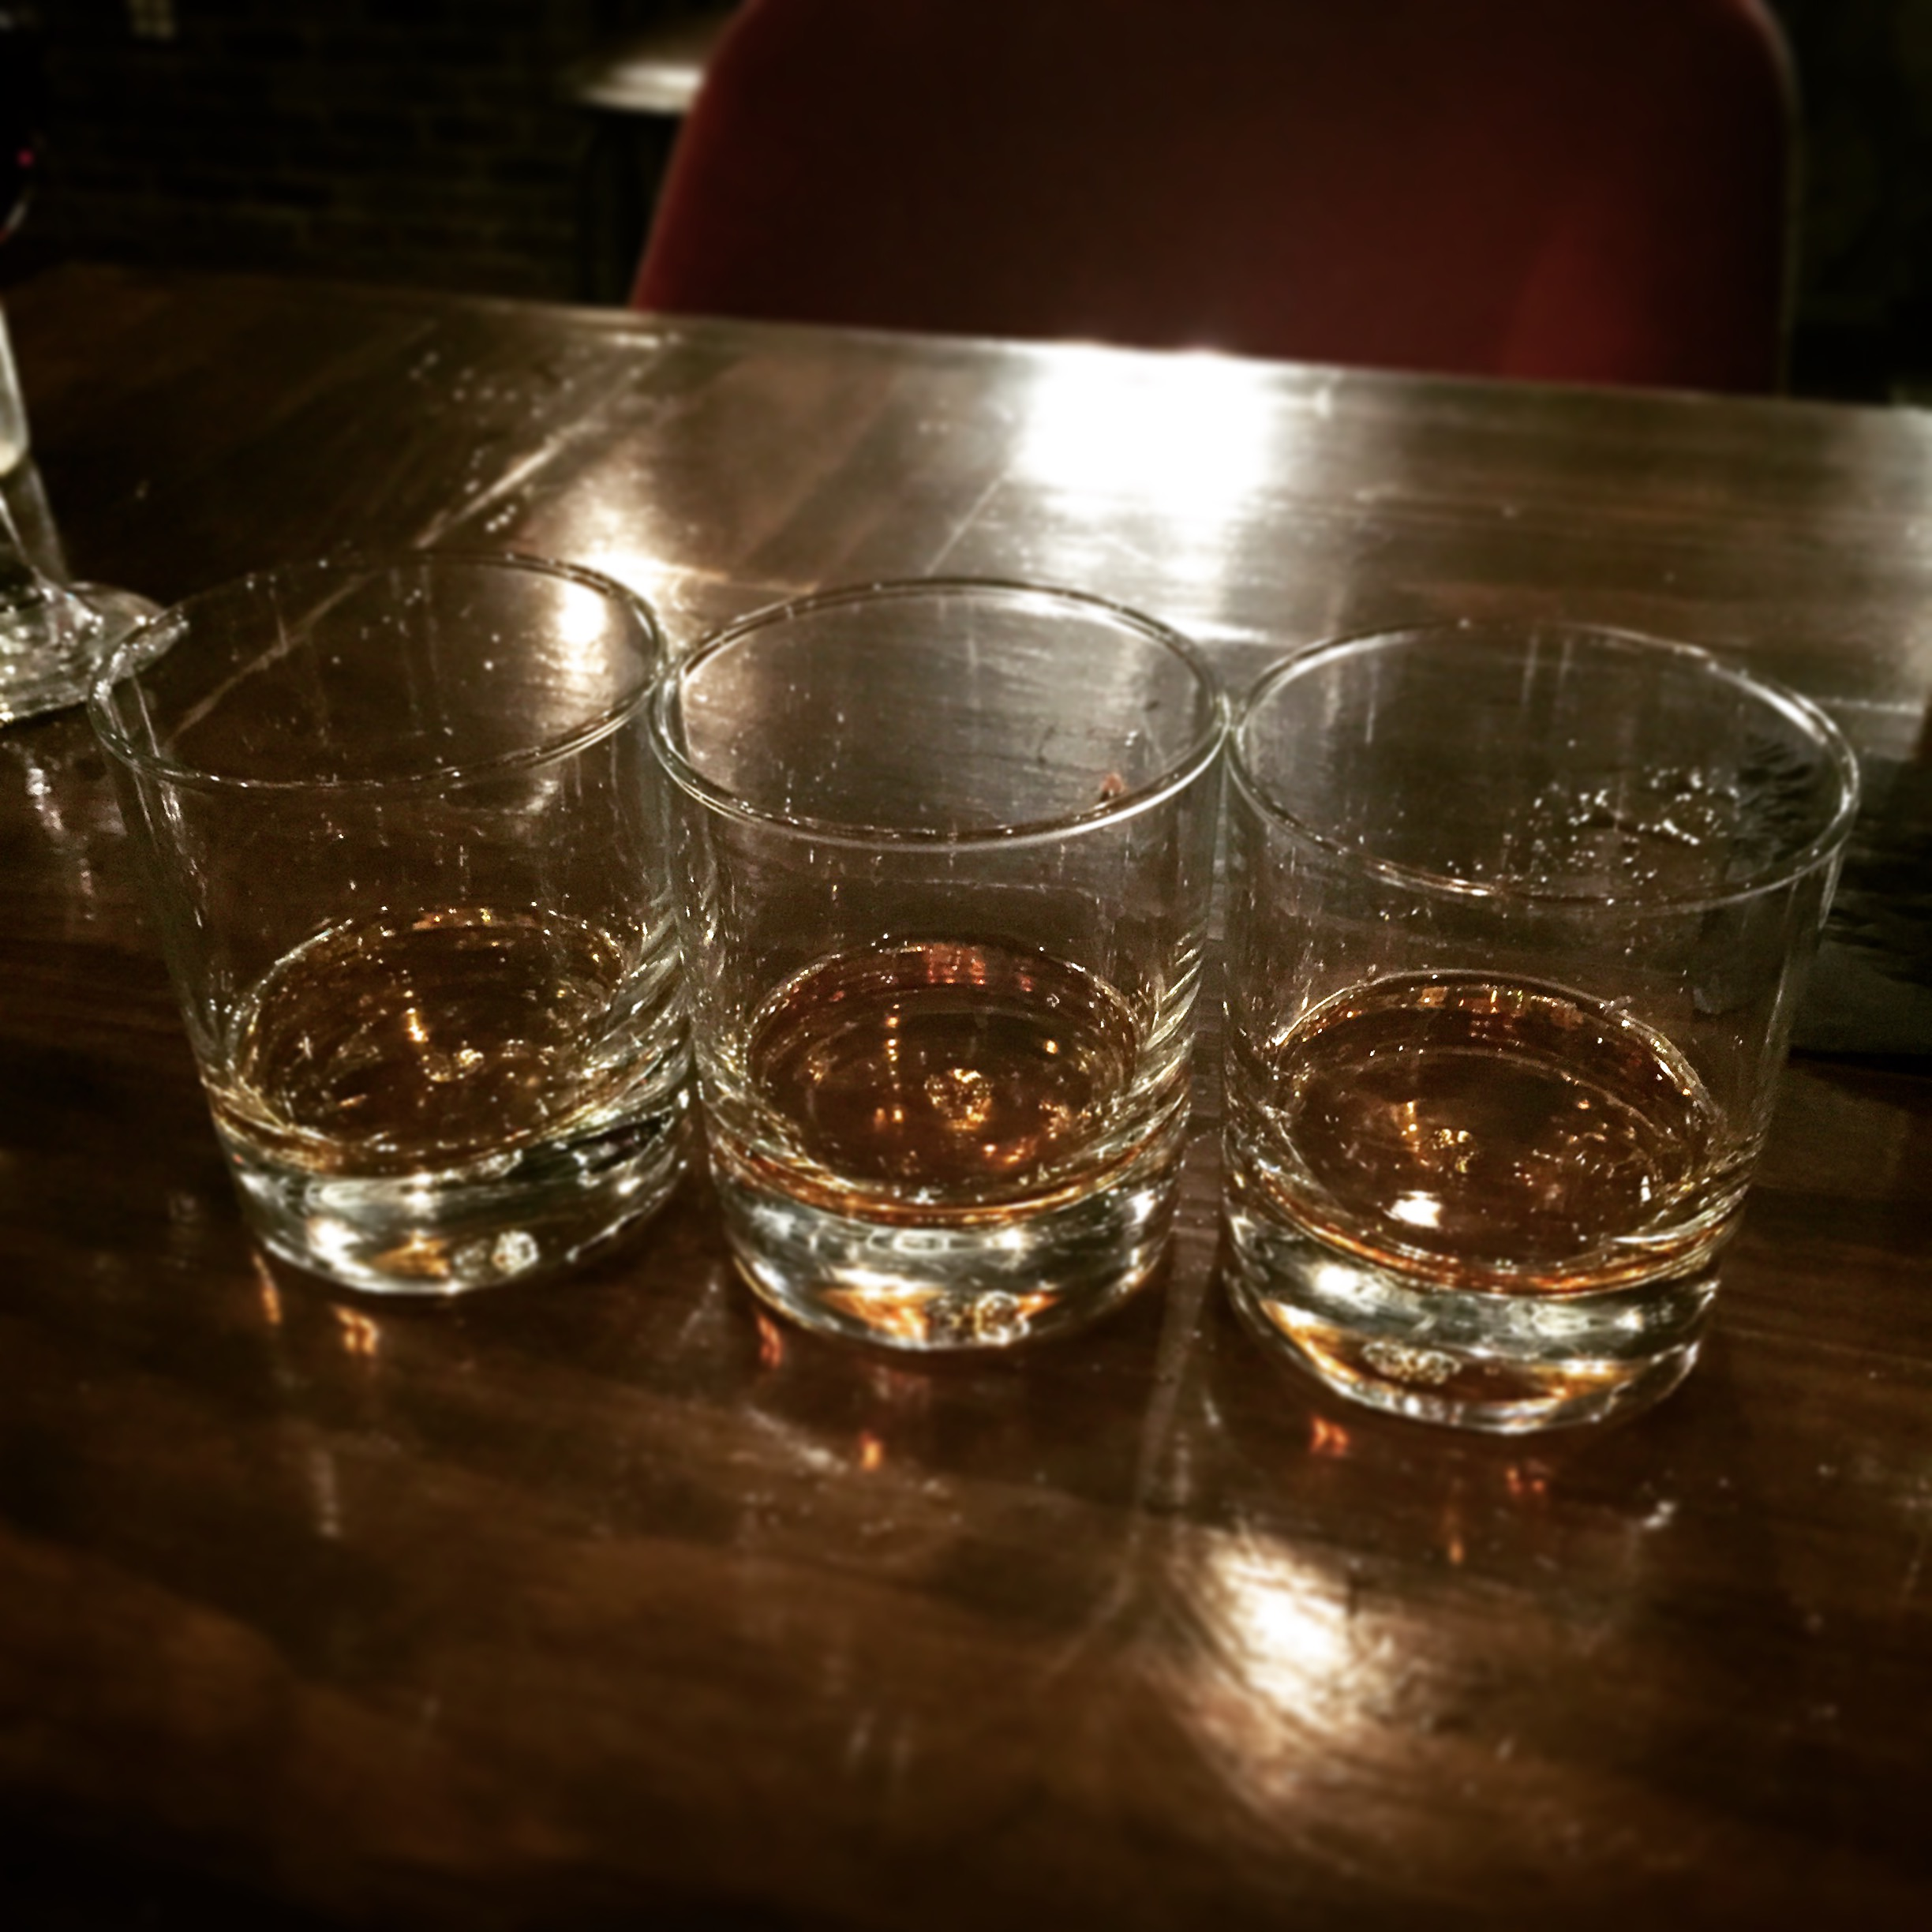 From left: Bulleit Rye, Hudson Manhattan, Whistle Pig 10 Year Rye